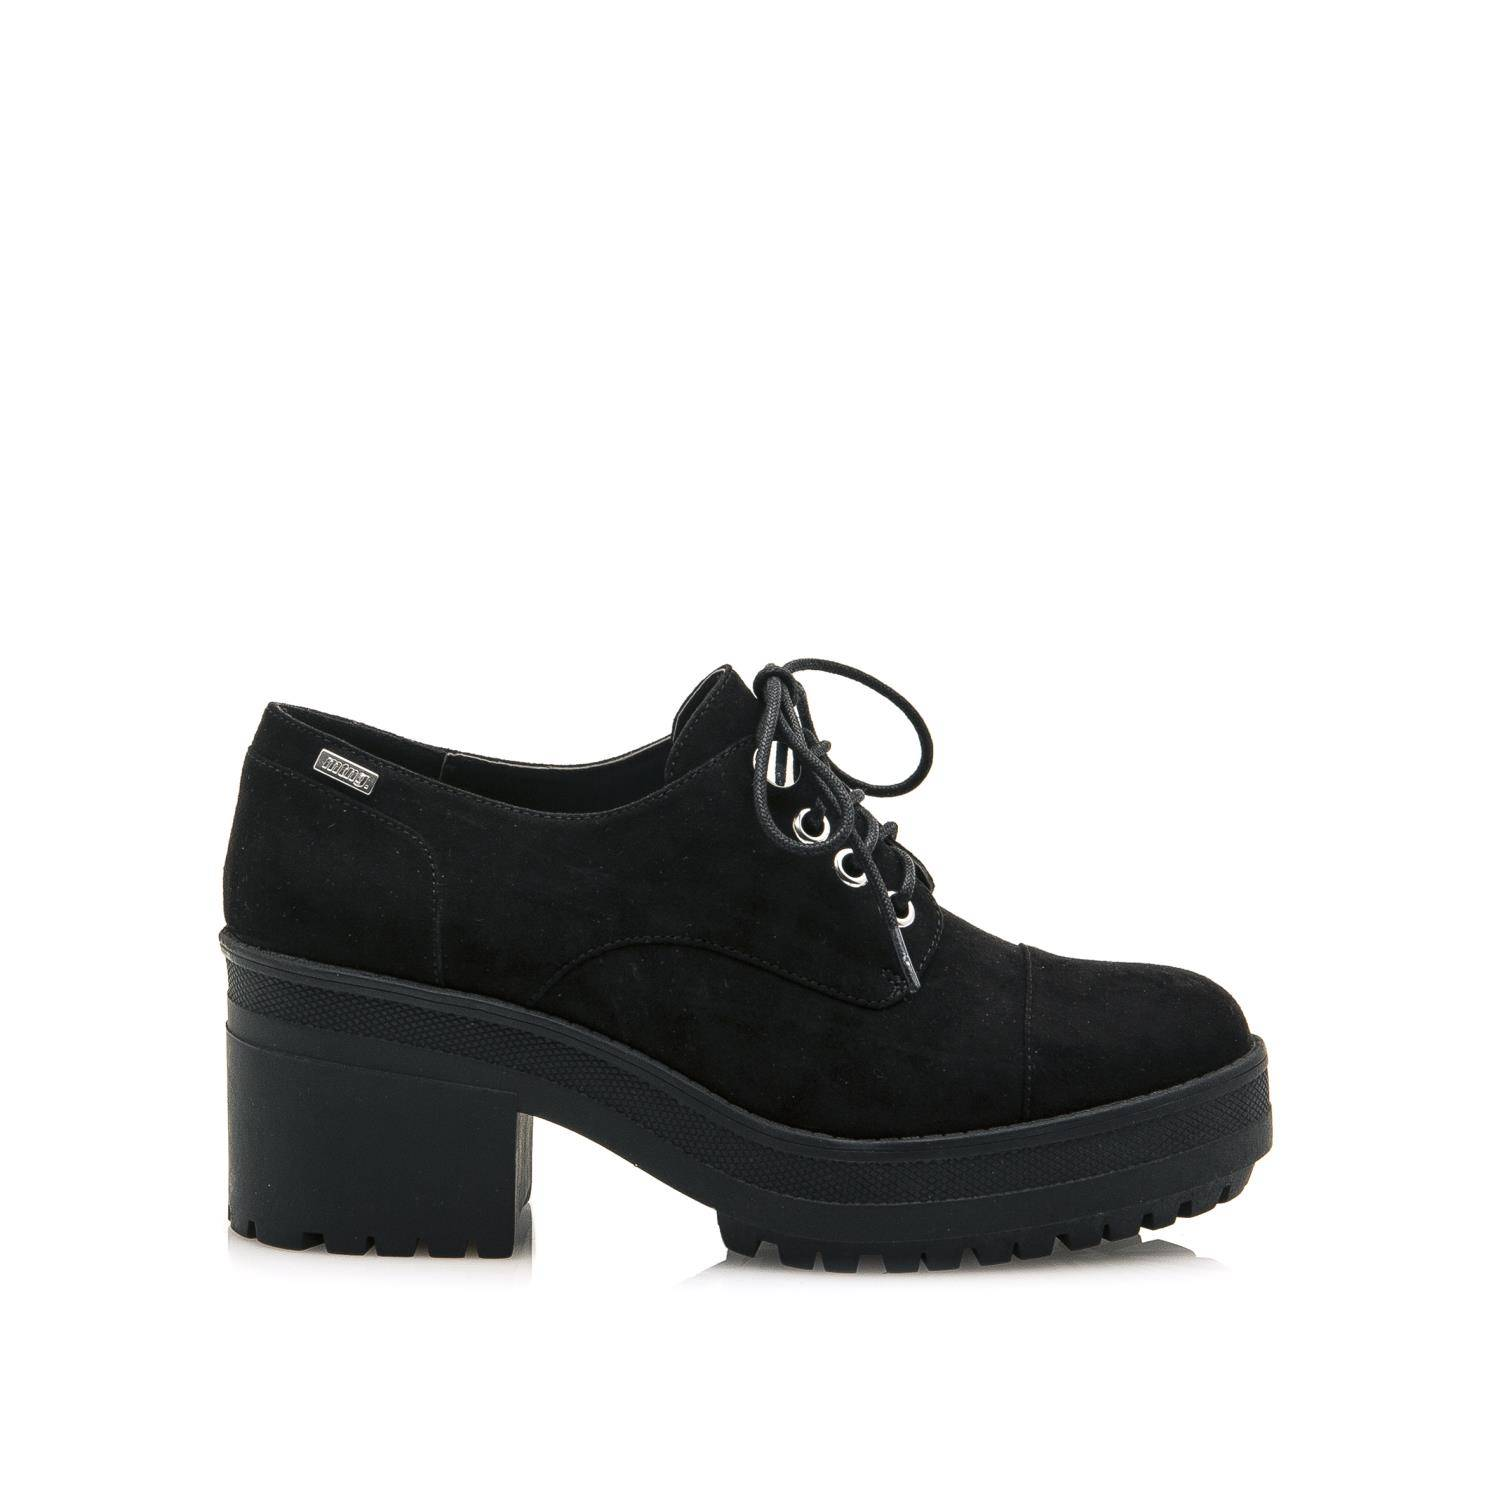 6ccb9f09ee9 MTNG-Mujer Zapatos Zapato Oxford MILA negro-p ...